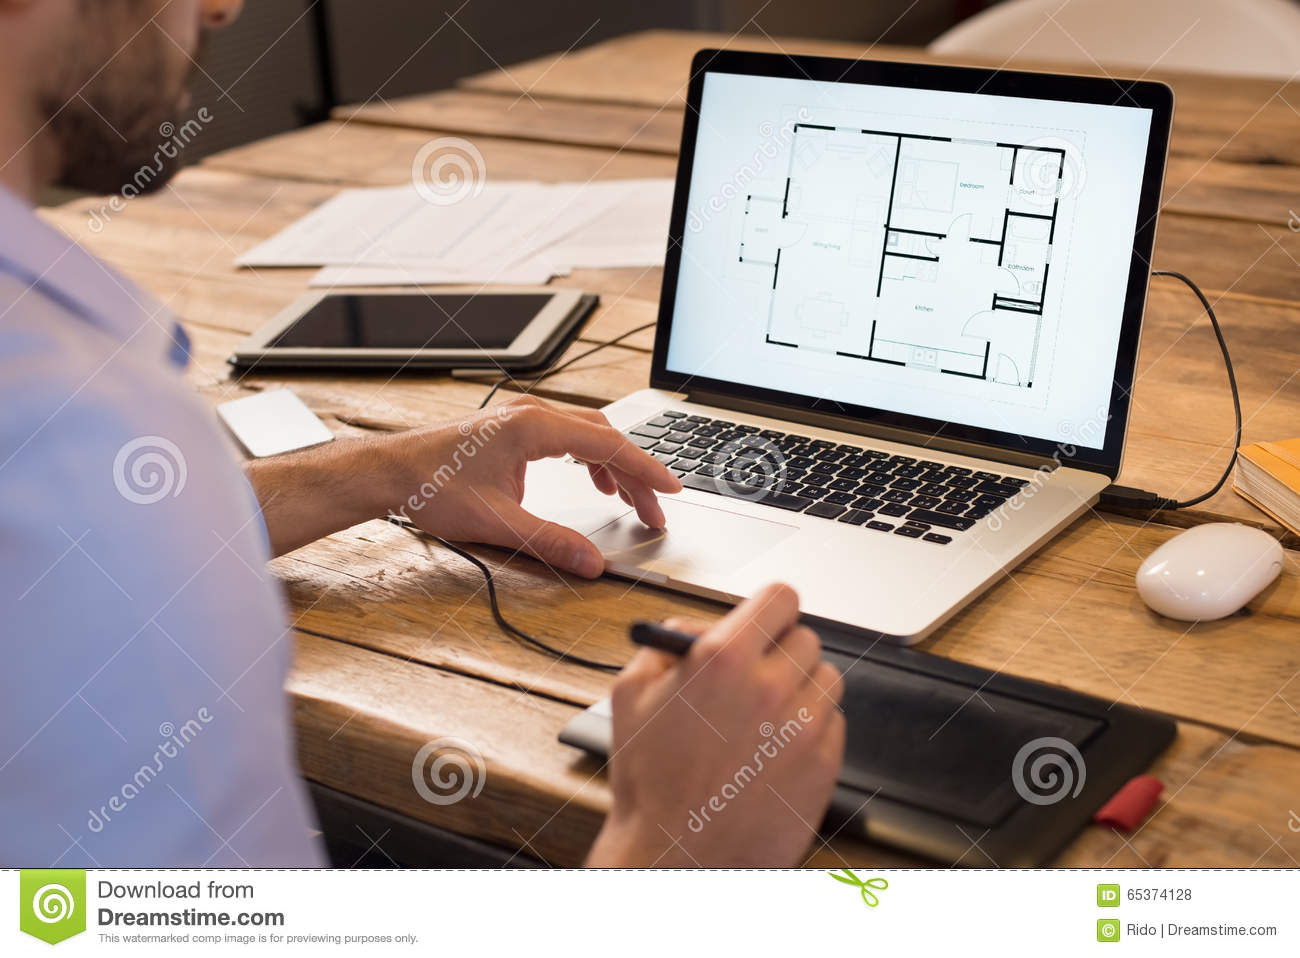 Interior Designers At Work interior designer at work stock photo - image: 65374128